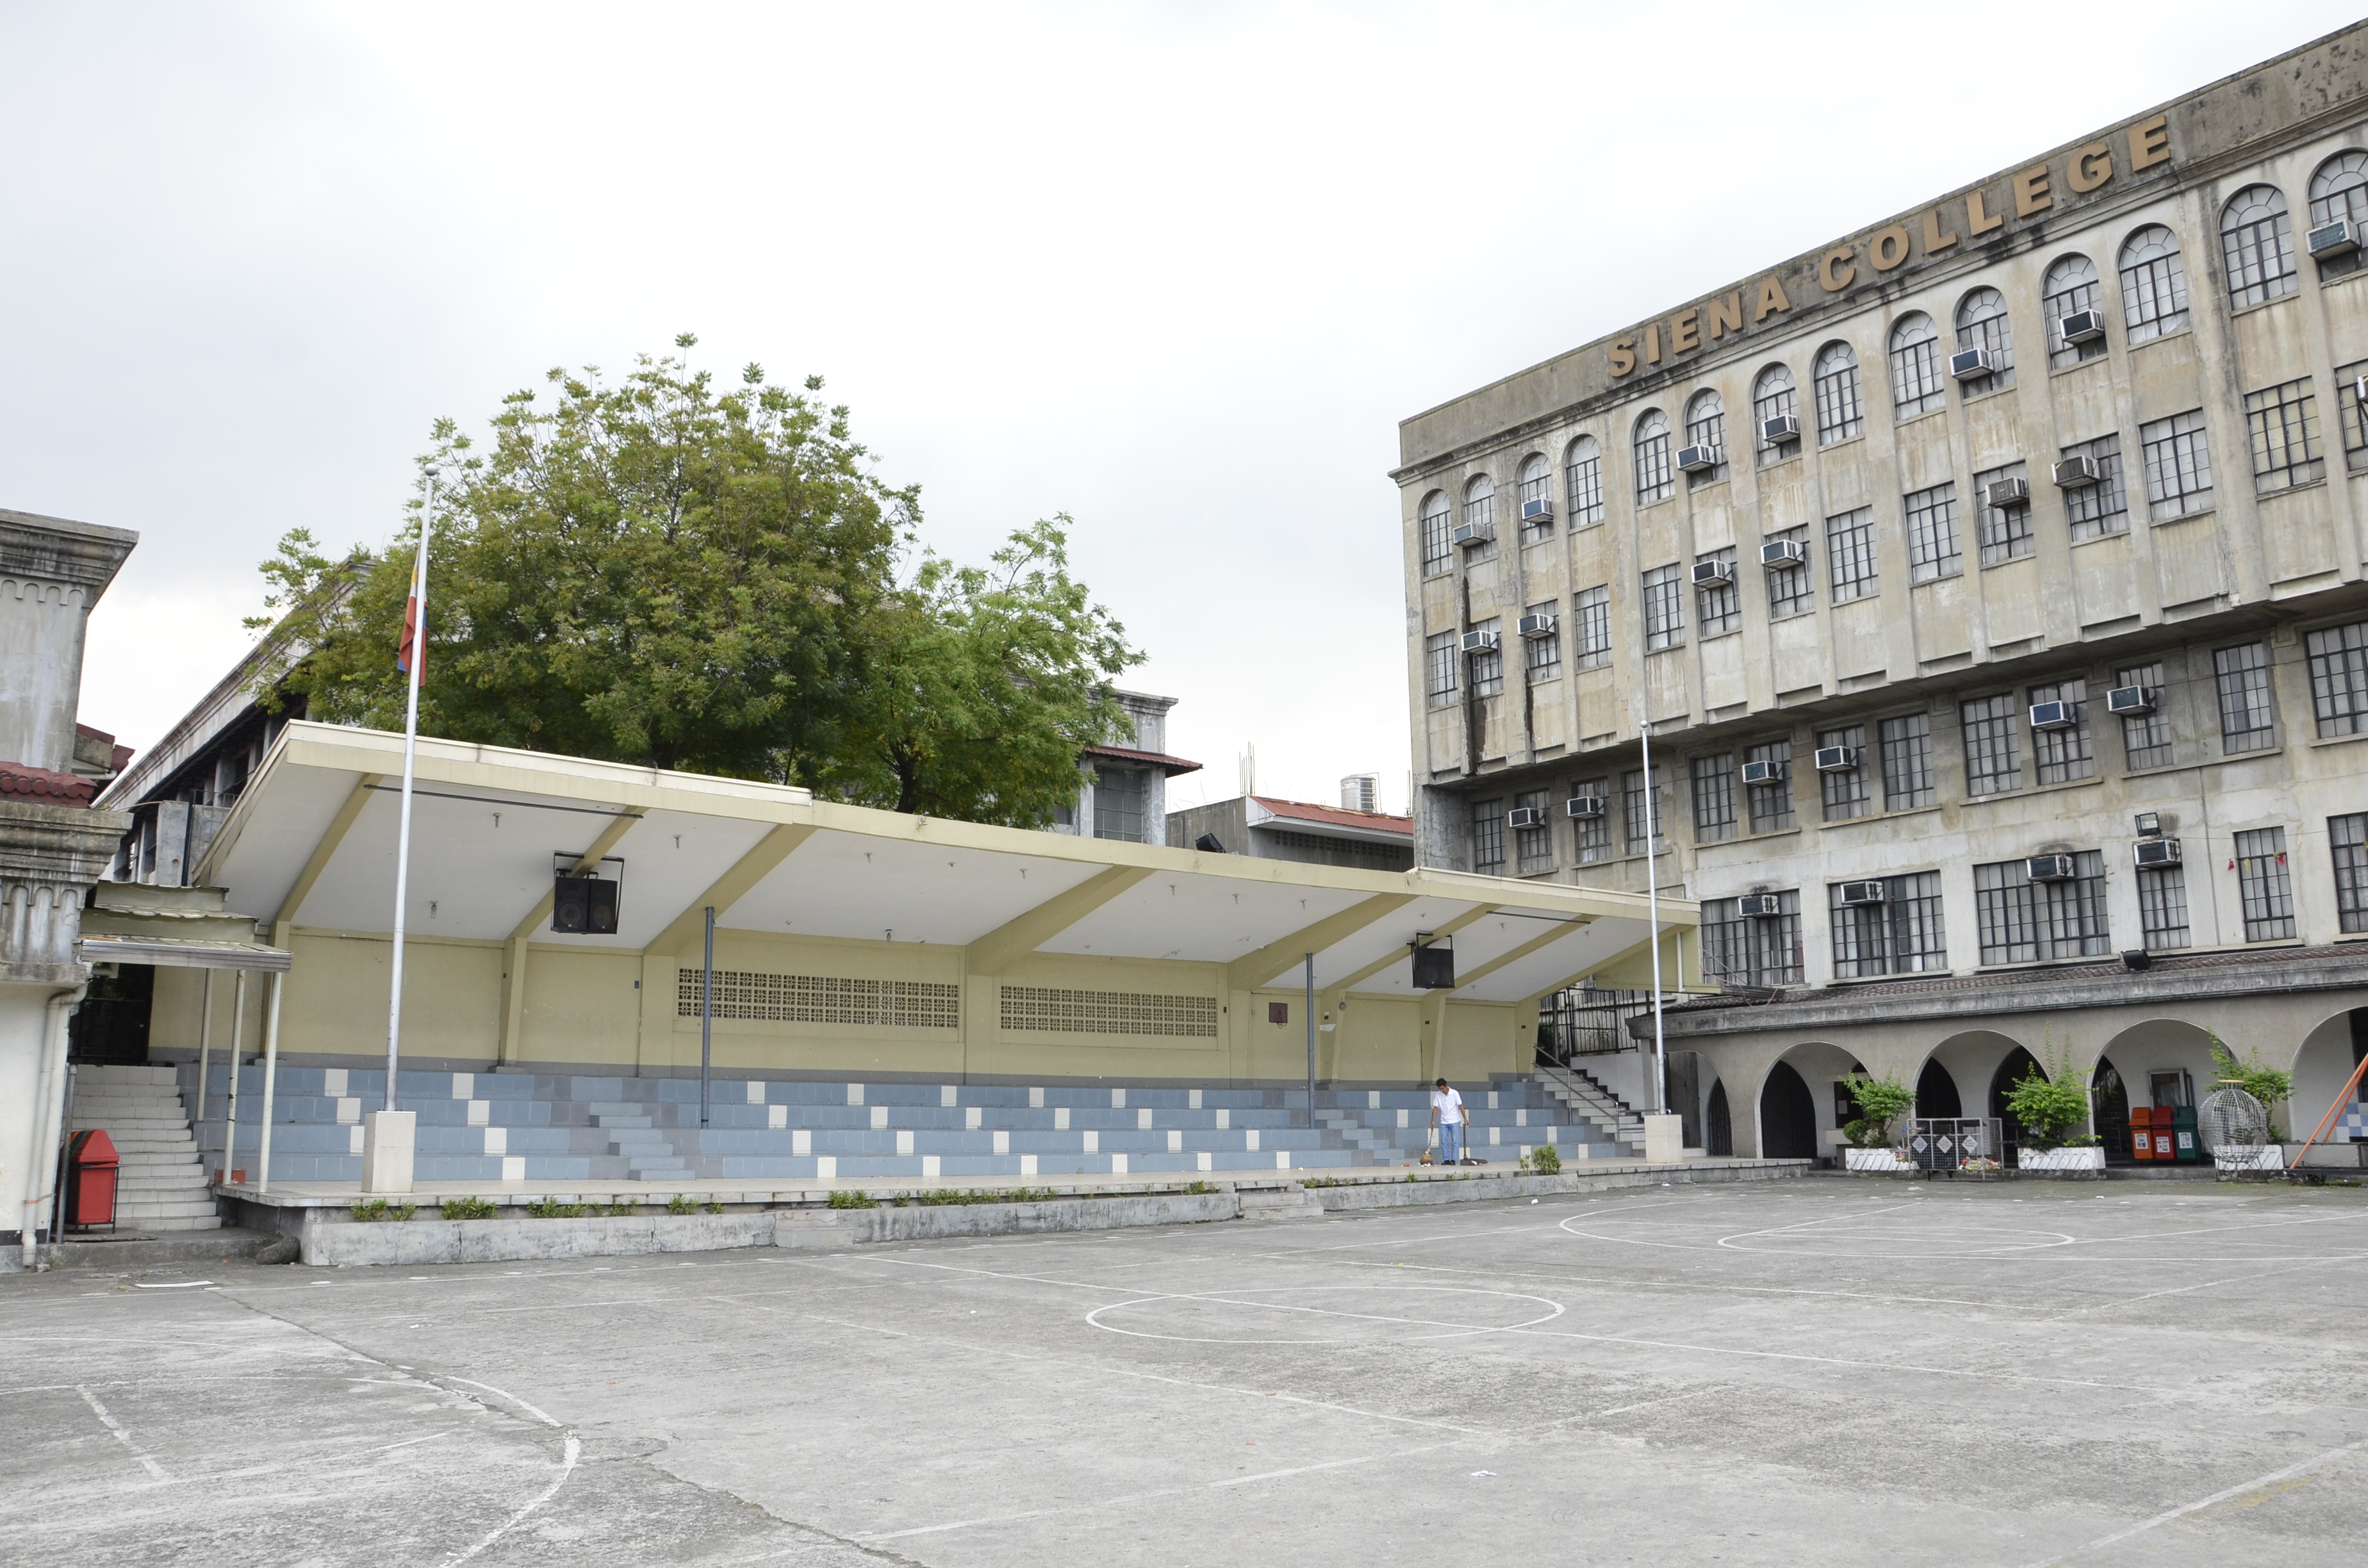 ST. THOMAS GRANDSTAND - INSTITUTIONAL FACILITIES